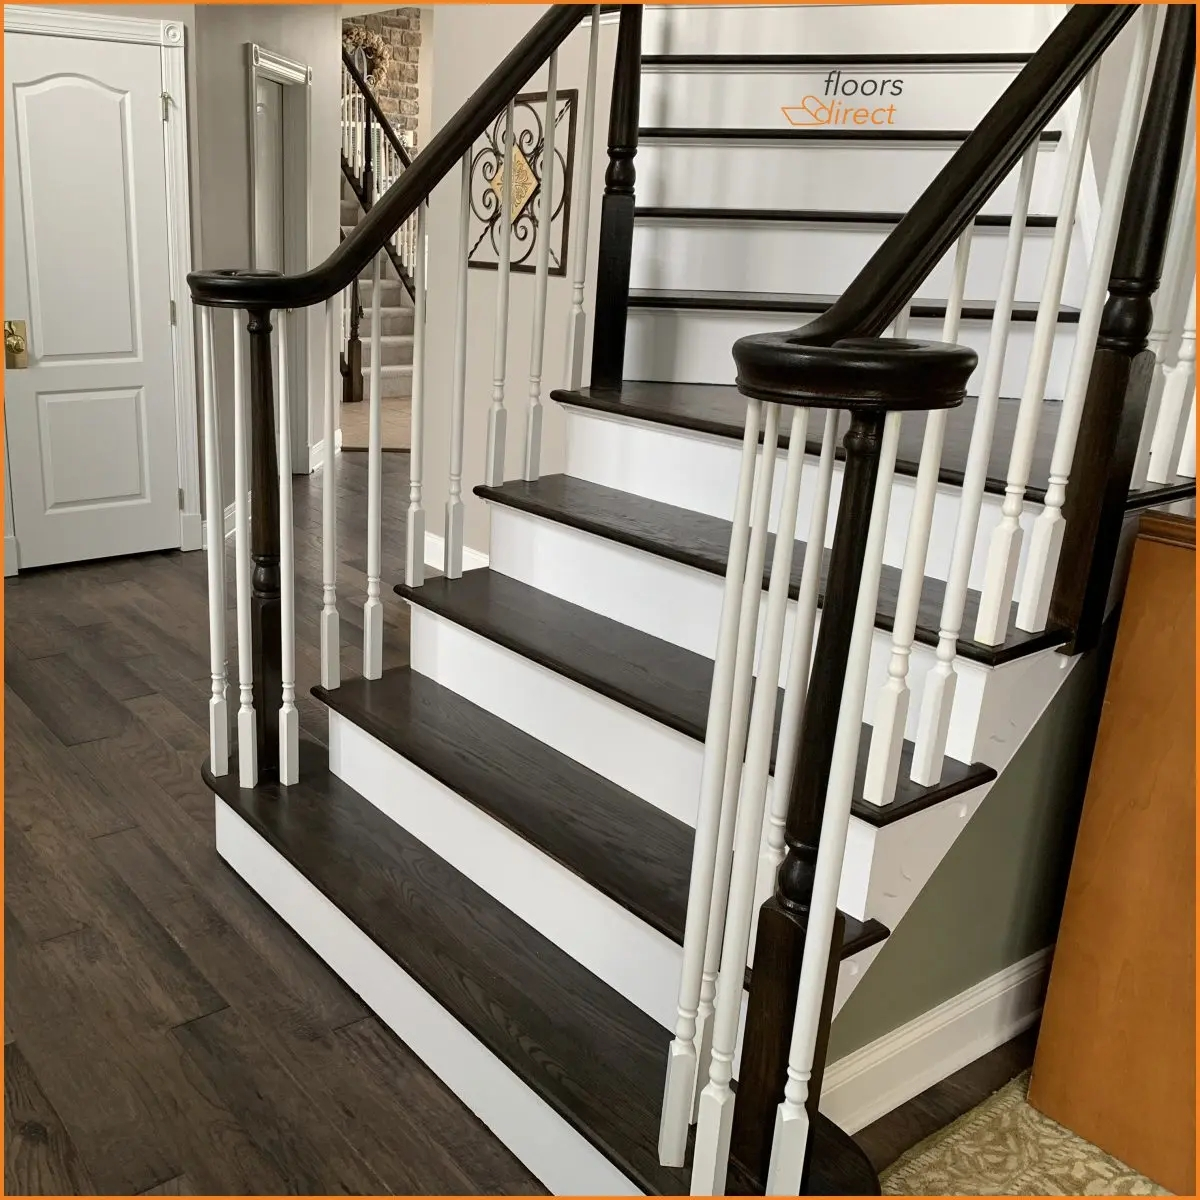 Flooring Installation Alexandria New Jersey Floors Direct   Wood Floors And Stairs Direct   Wide Plank   Floor Covering   Brazilian Cherry   Installation   Maple